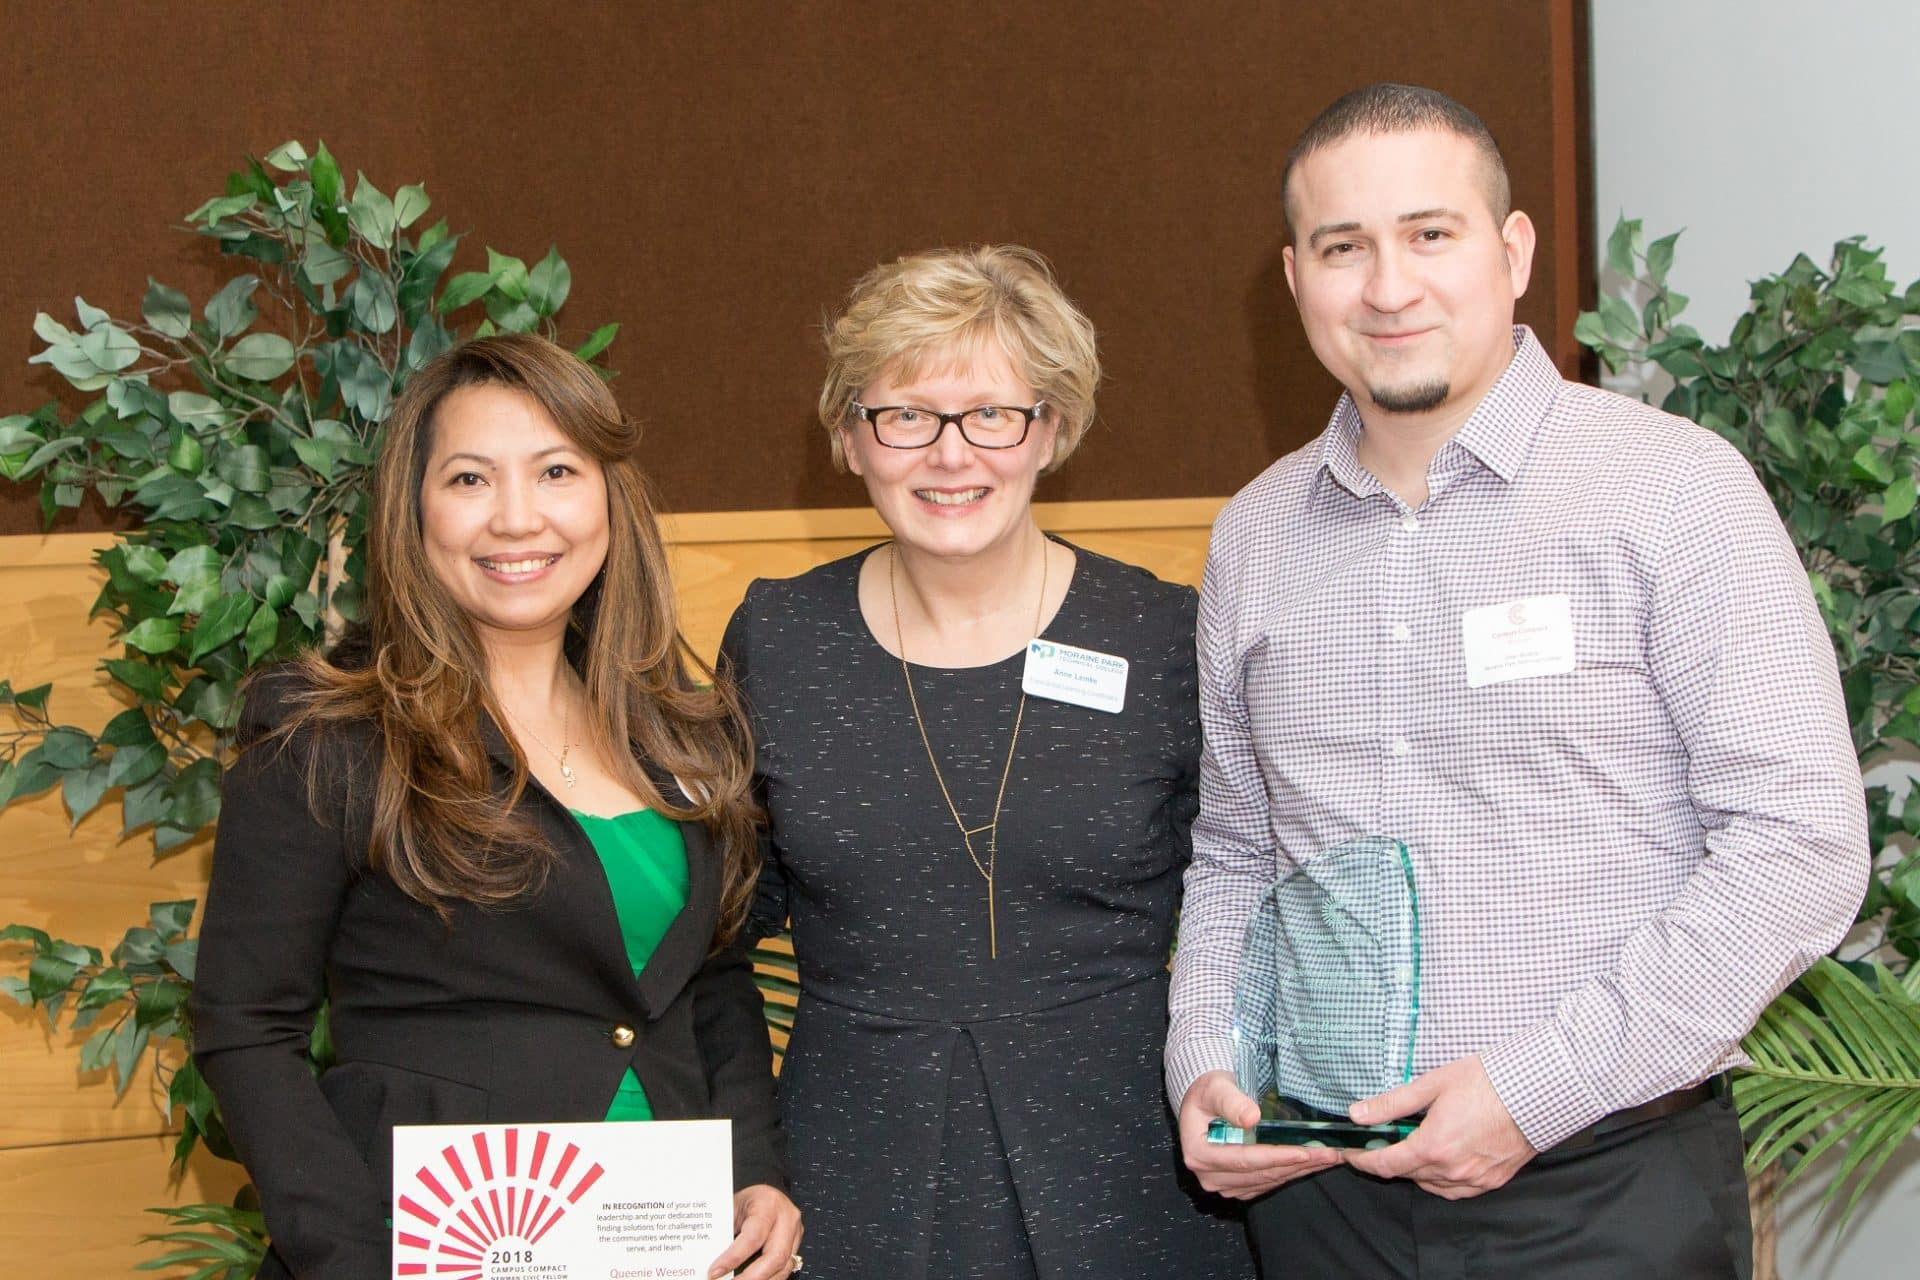 Queenie Weesen, Anne Lemke and Jose Bustos at Campus Compact awards